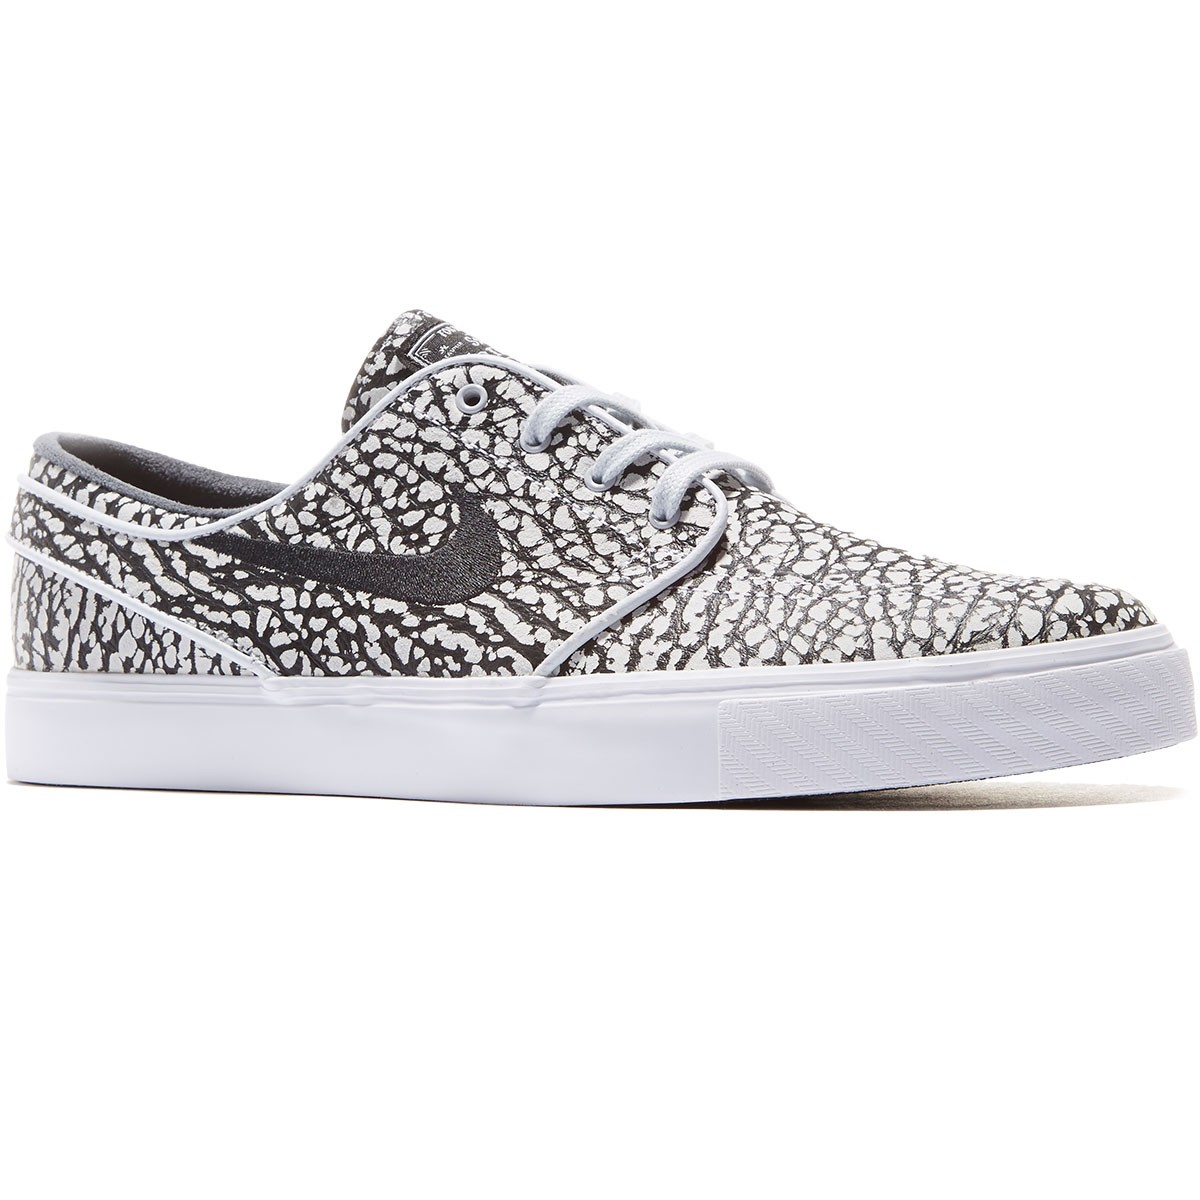 5afba4928b8 Nike Zoom Stefan Janoski Elite Road Pack Shoes - Pure Platinum White Black -